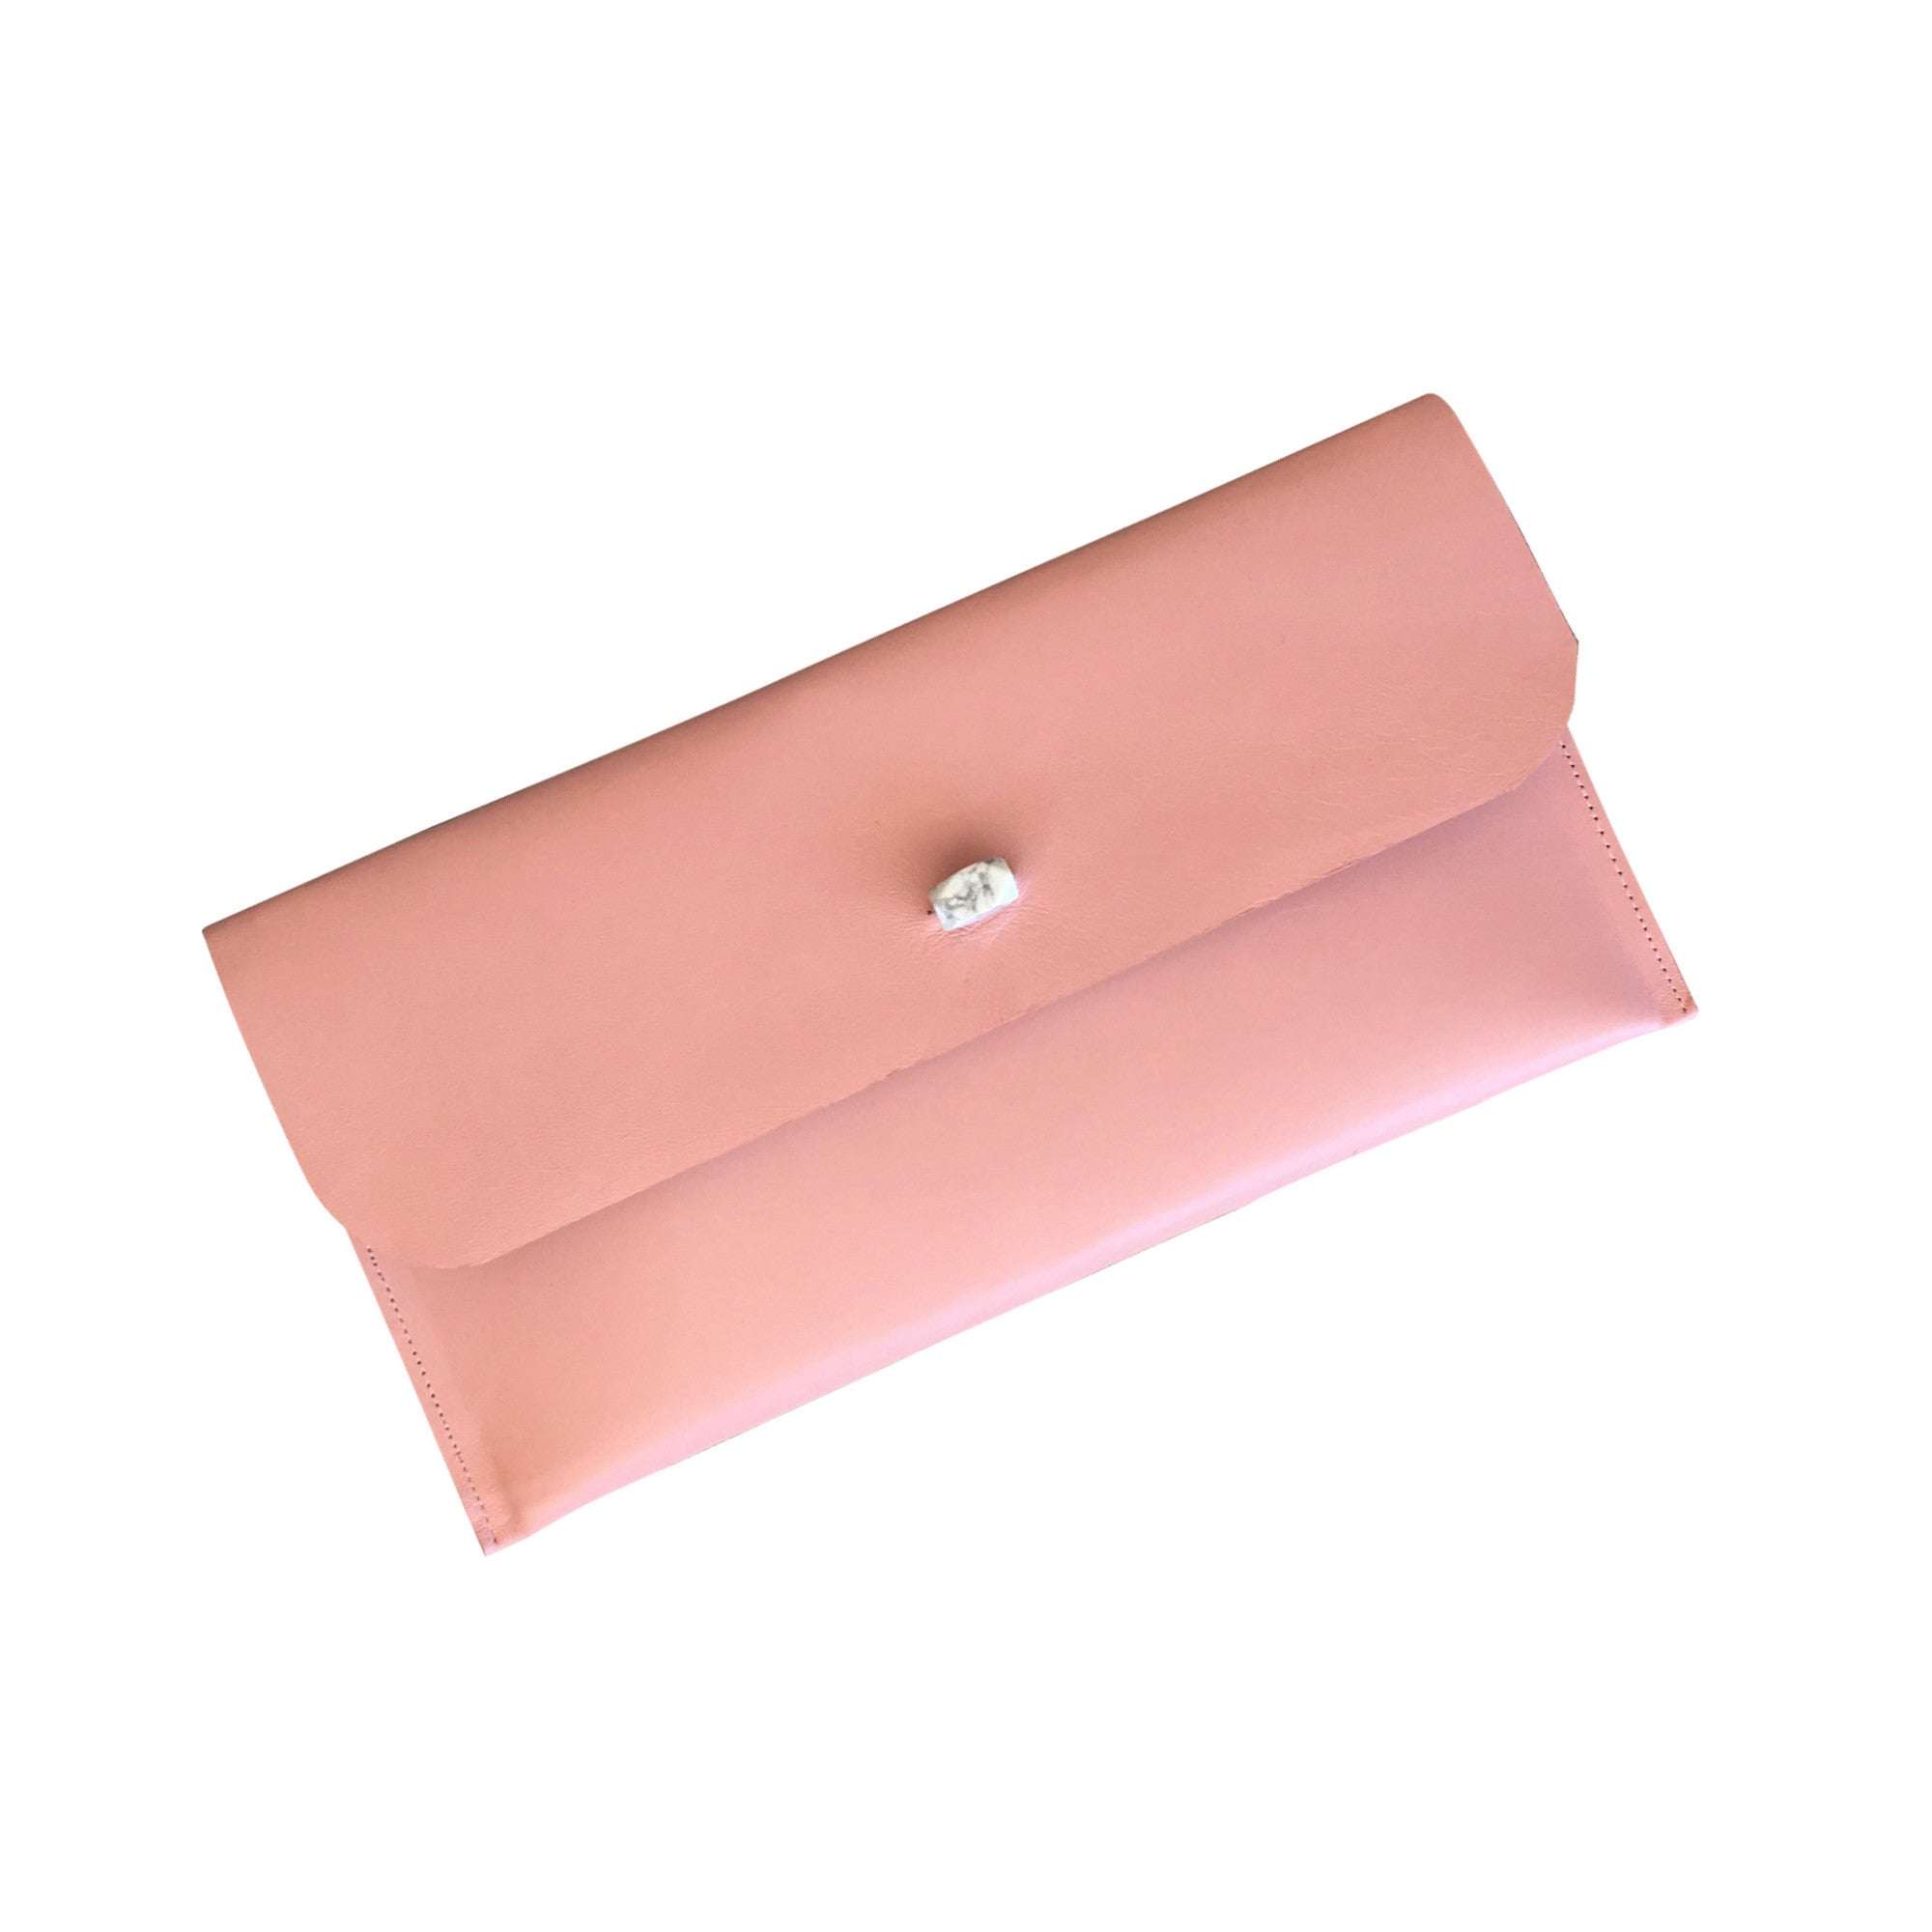 Lana Soft Clutch with Howlite Stone - Nude Pink - Elle + Adhira